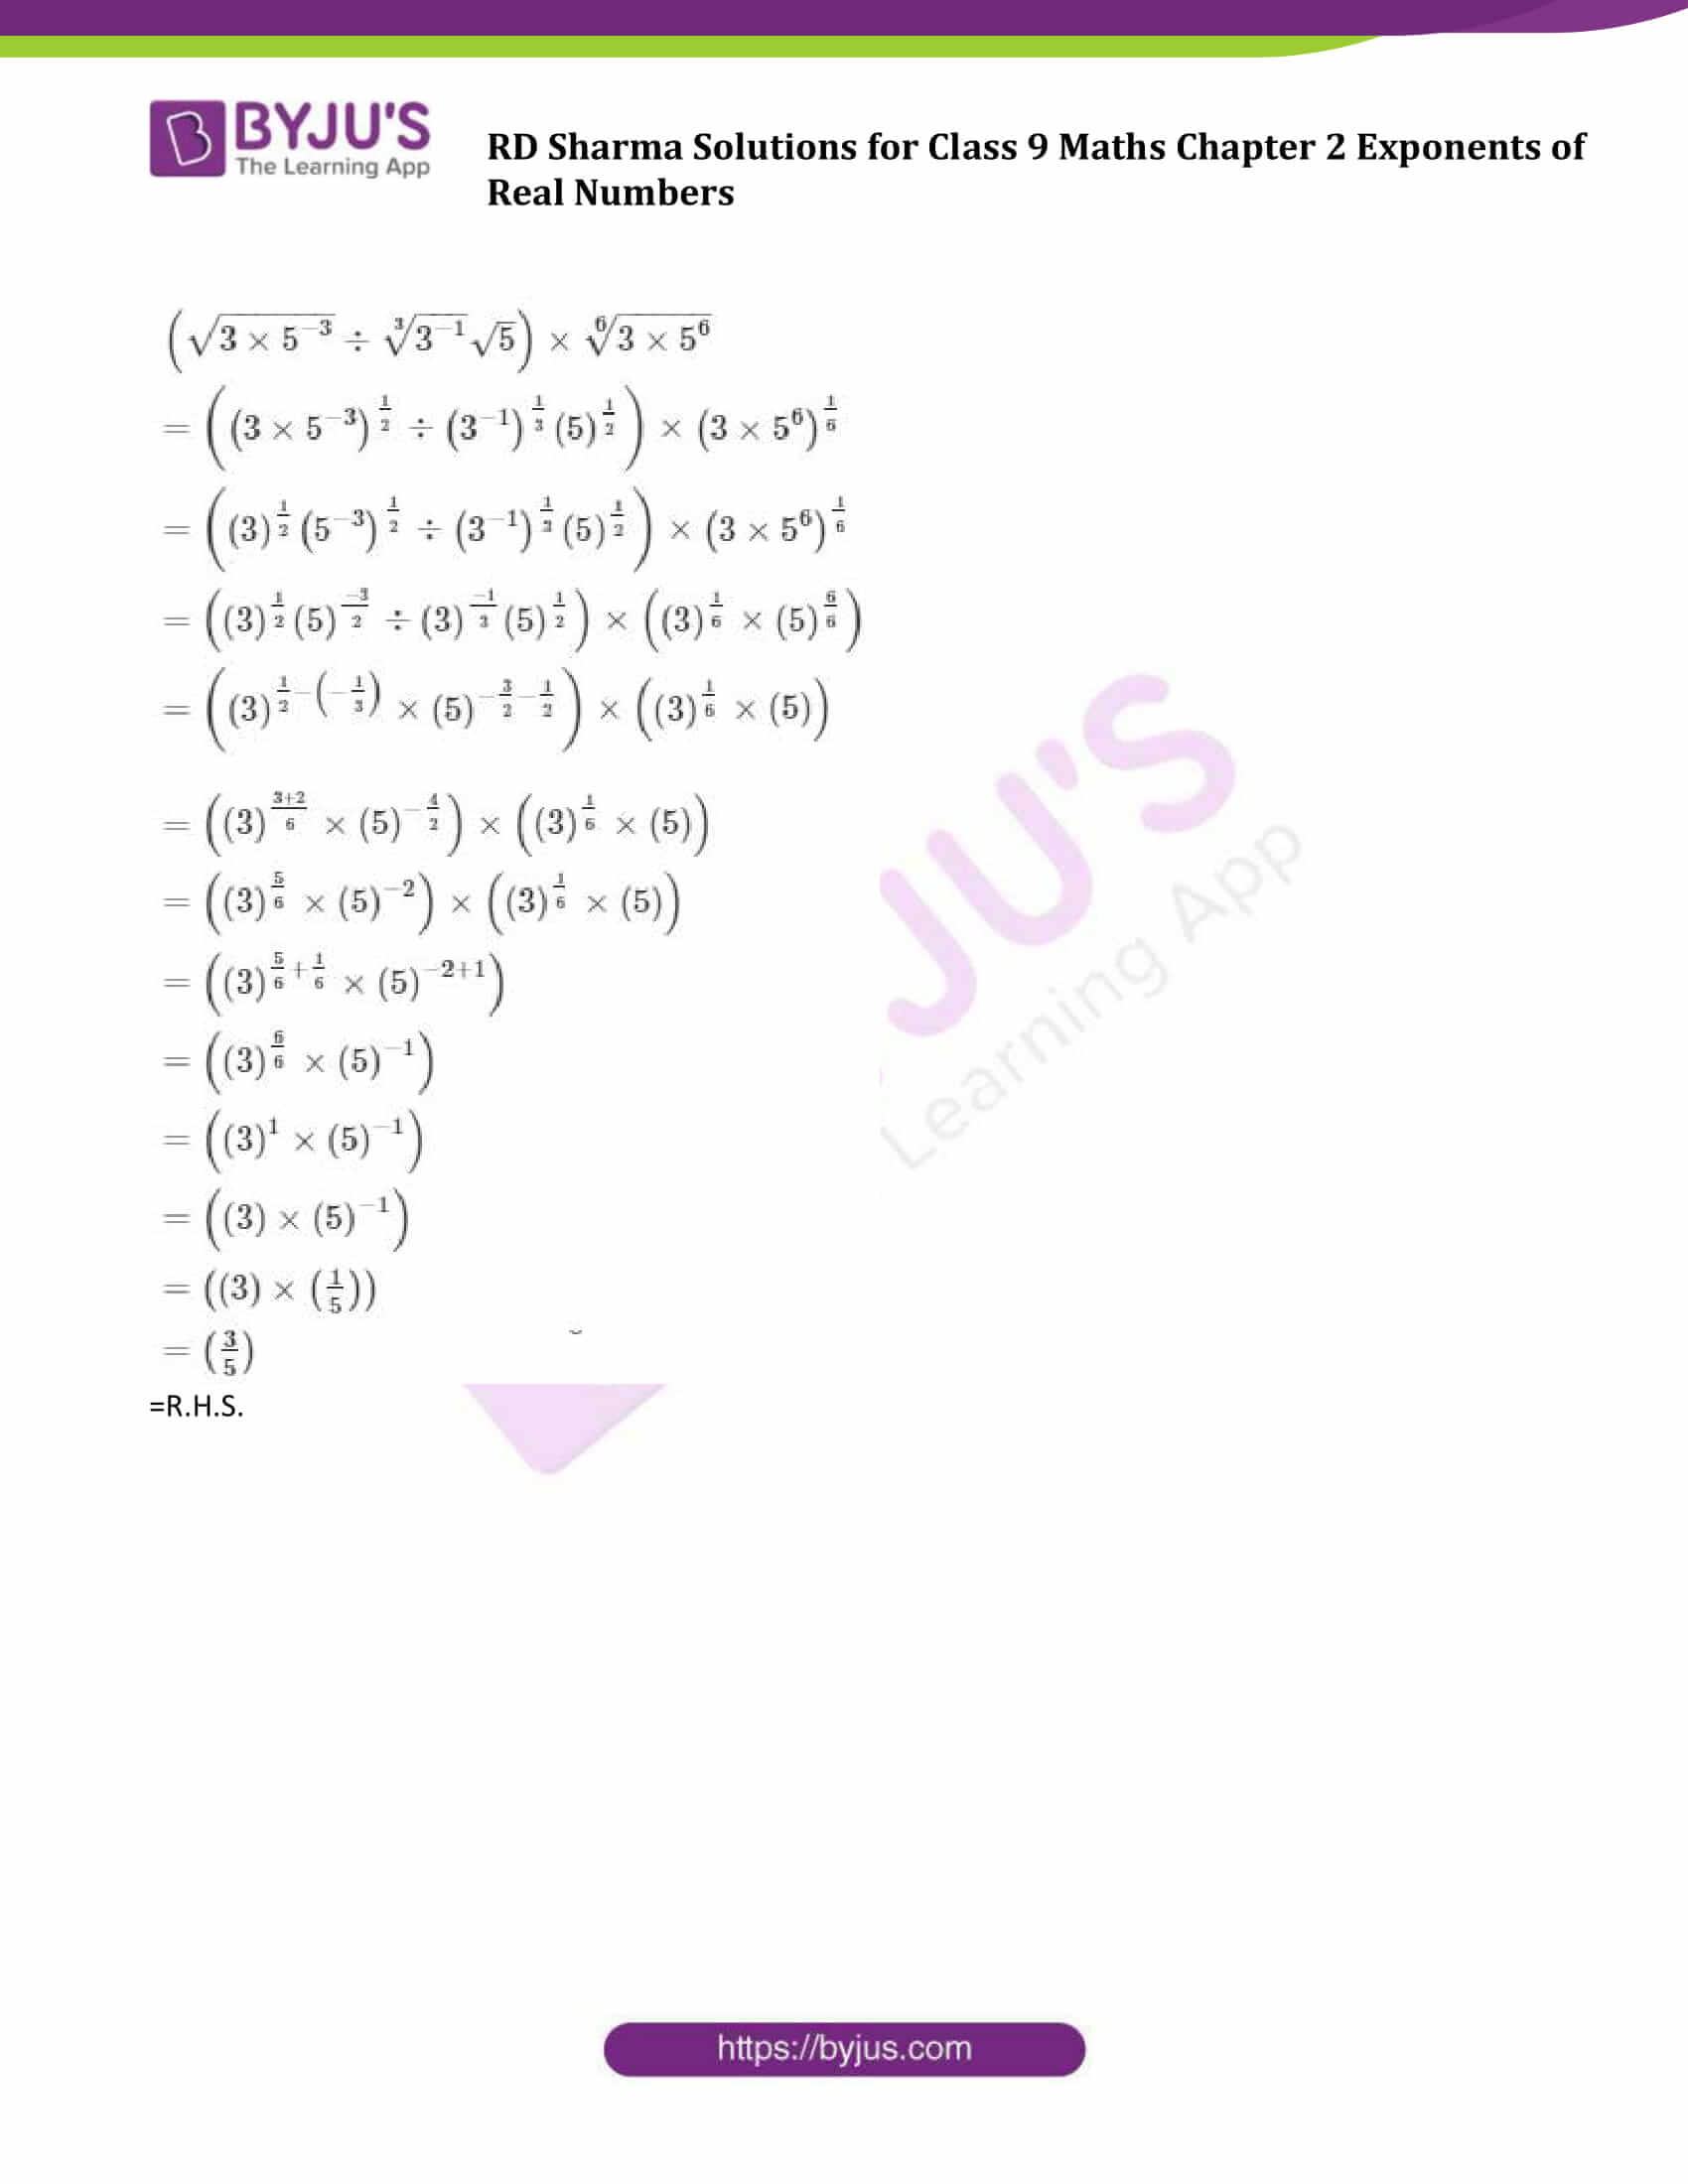 RD Sharma Solution class 9 Maths Chapter 2 Exponents of Real Numbers 15